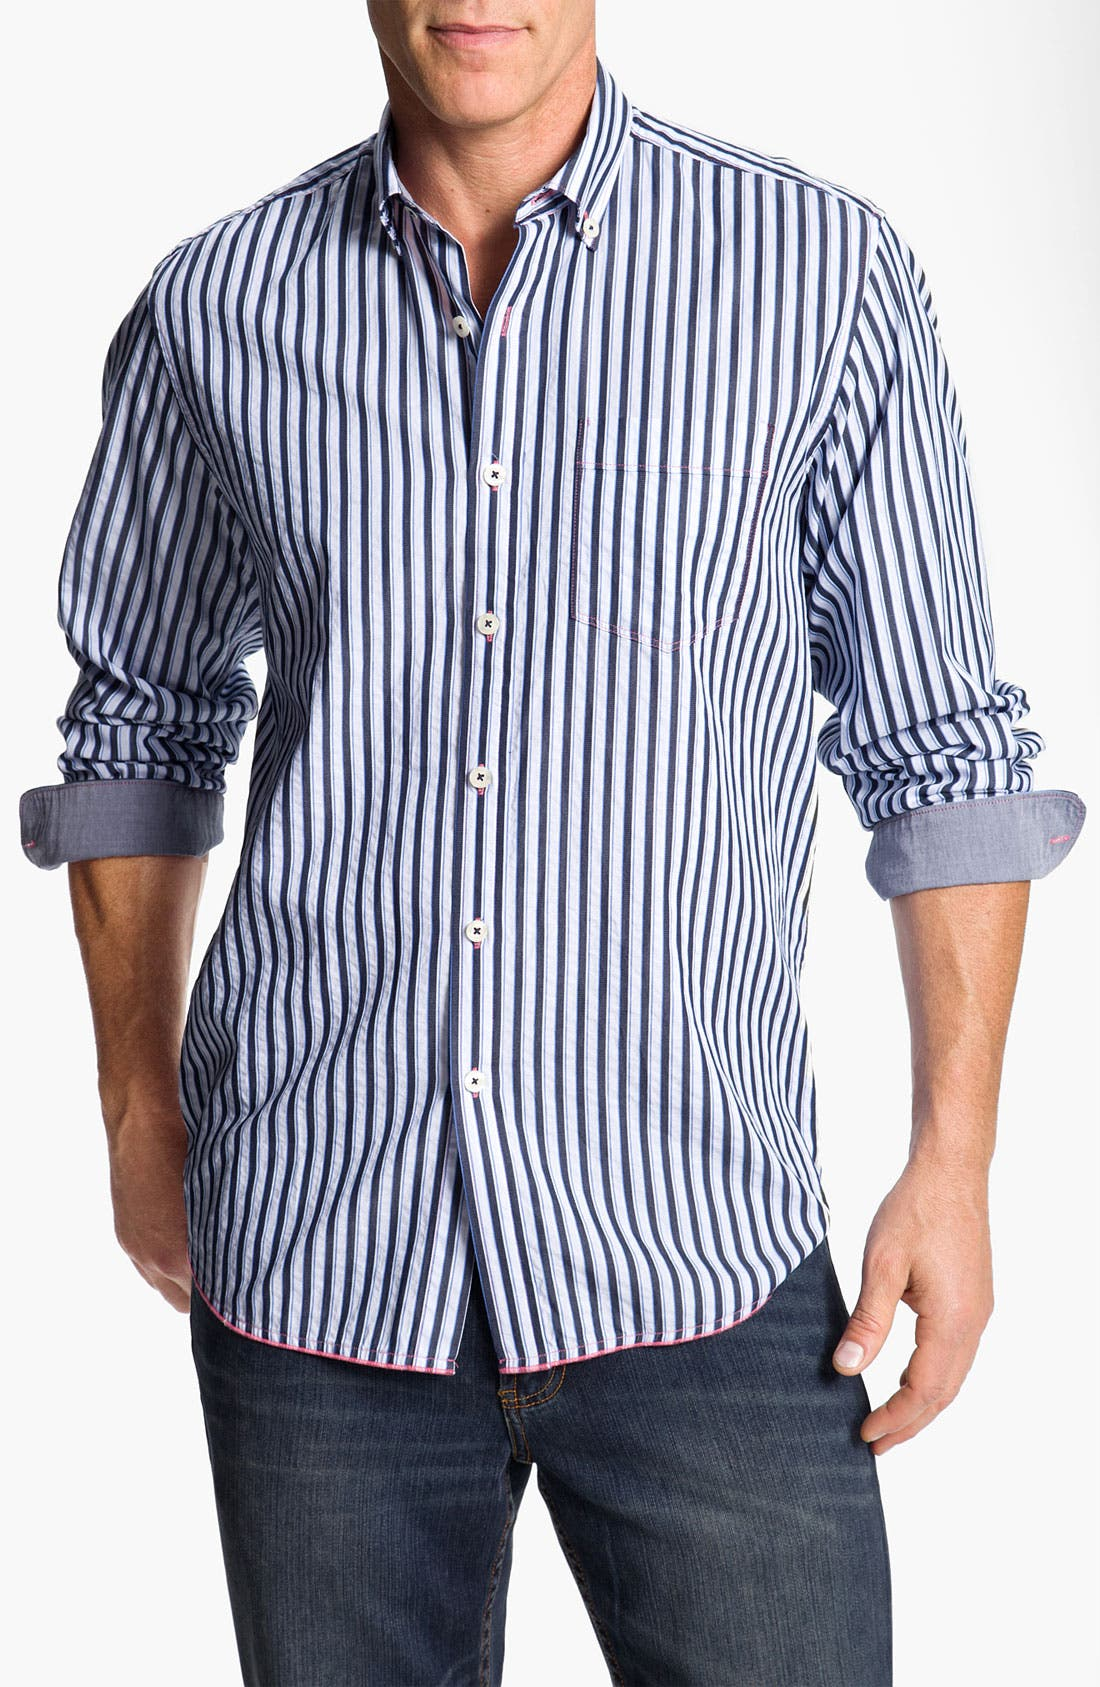 Alternate Image 1 Selected - Tommy Bahama Denim 'Dalat Stripe' Sport Shirt